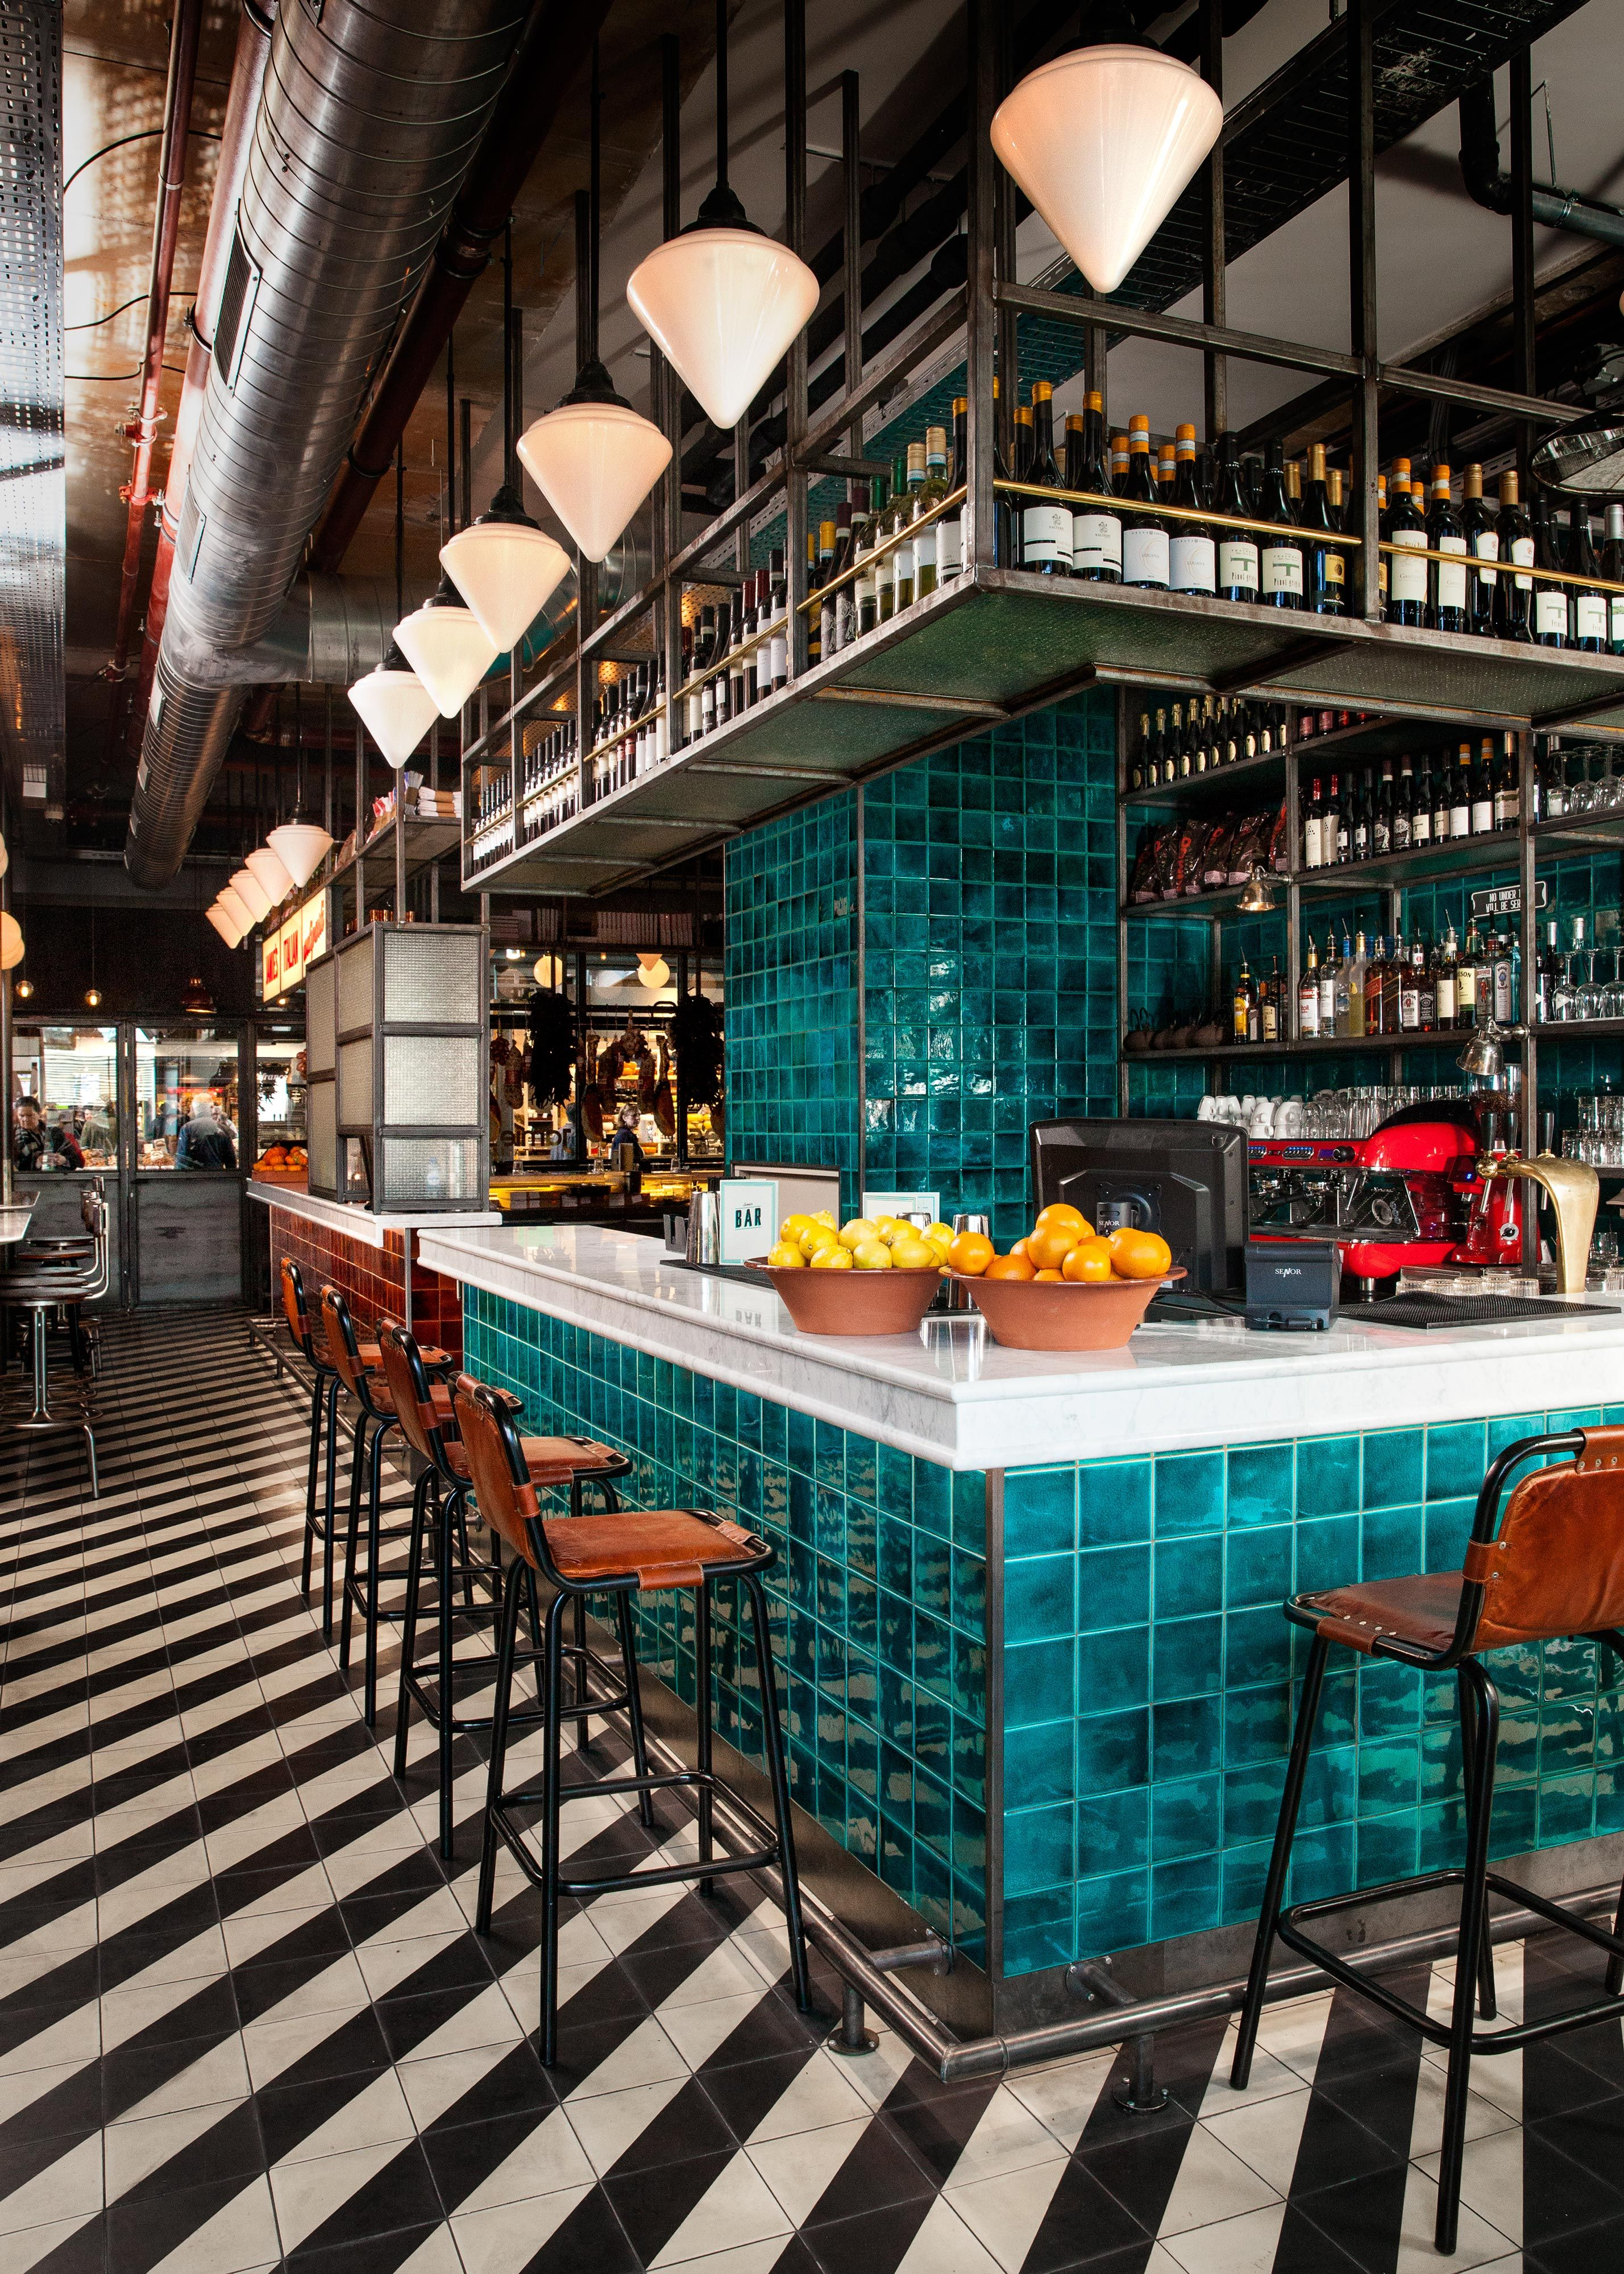 Loving The Tile In This Restaurant Rich Color Of Bar Really Pops Against Stripes On Floor Working A Hospitality Project